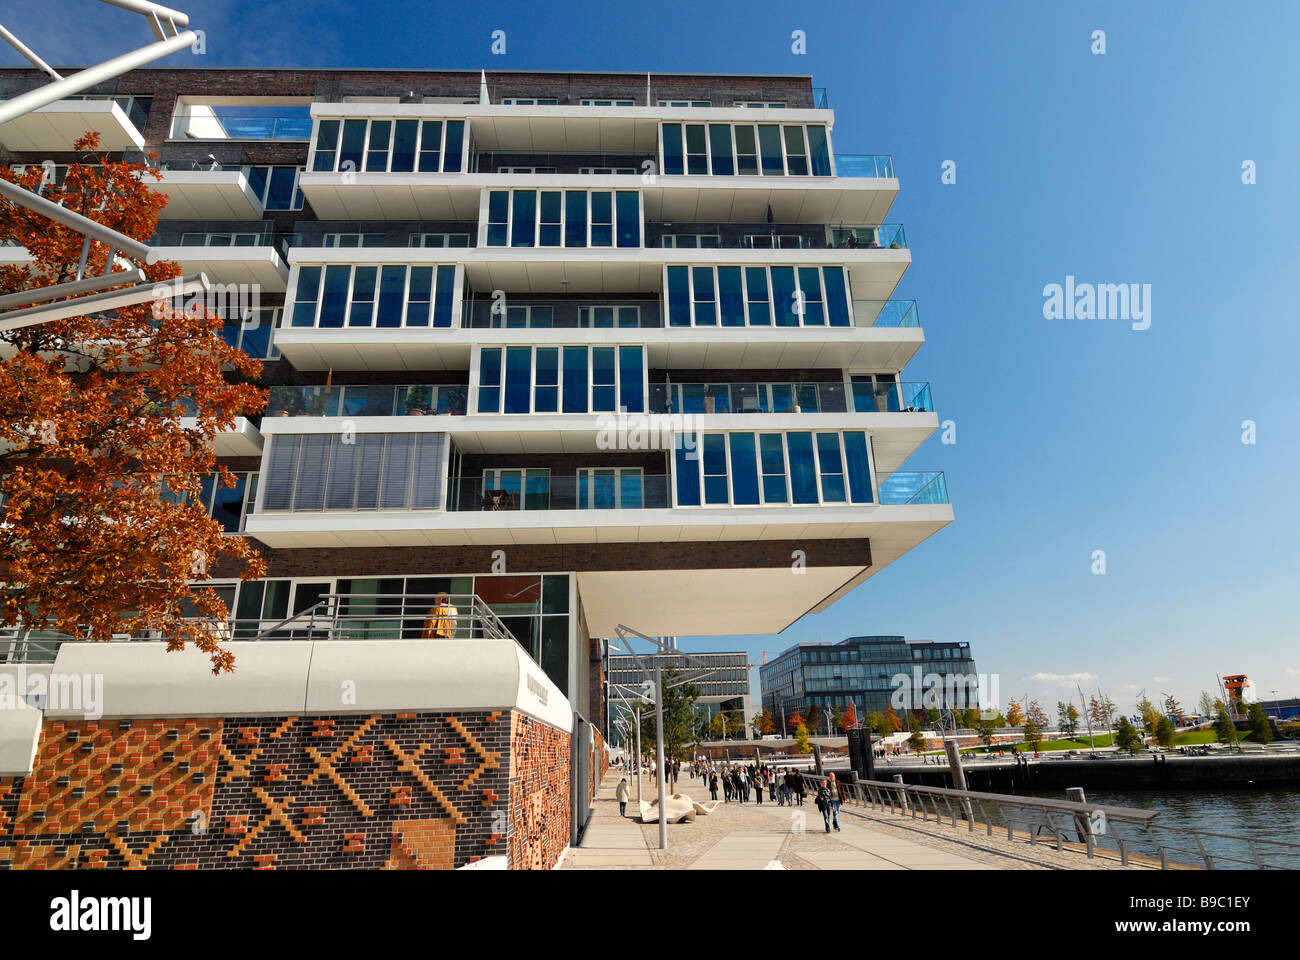 Modern architecture at Dalmannkaipromenade in the harbourcity Hafencity Hamburg, Germany. In the background the - Stock Image